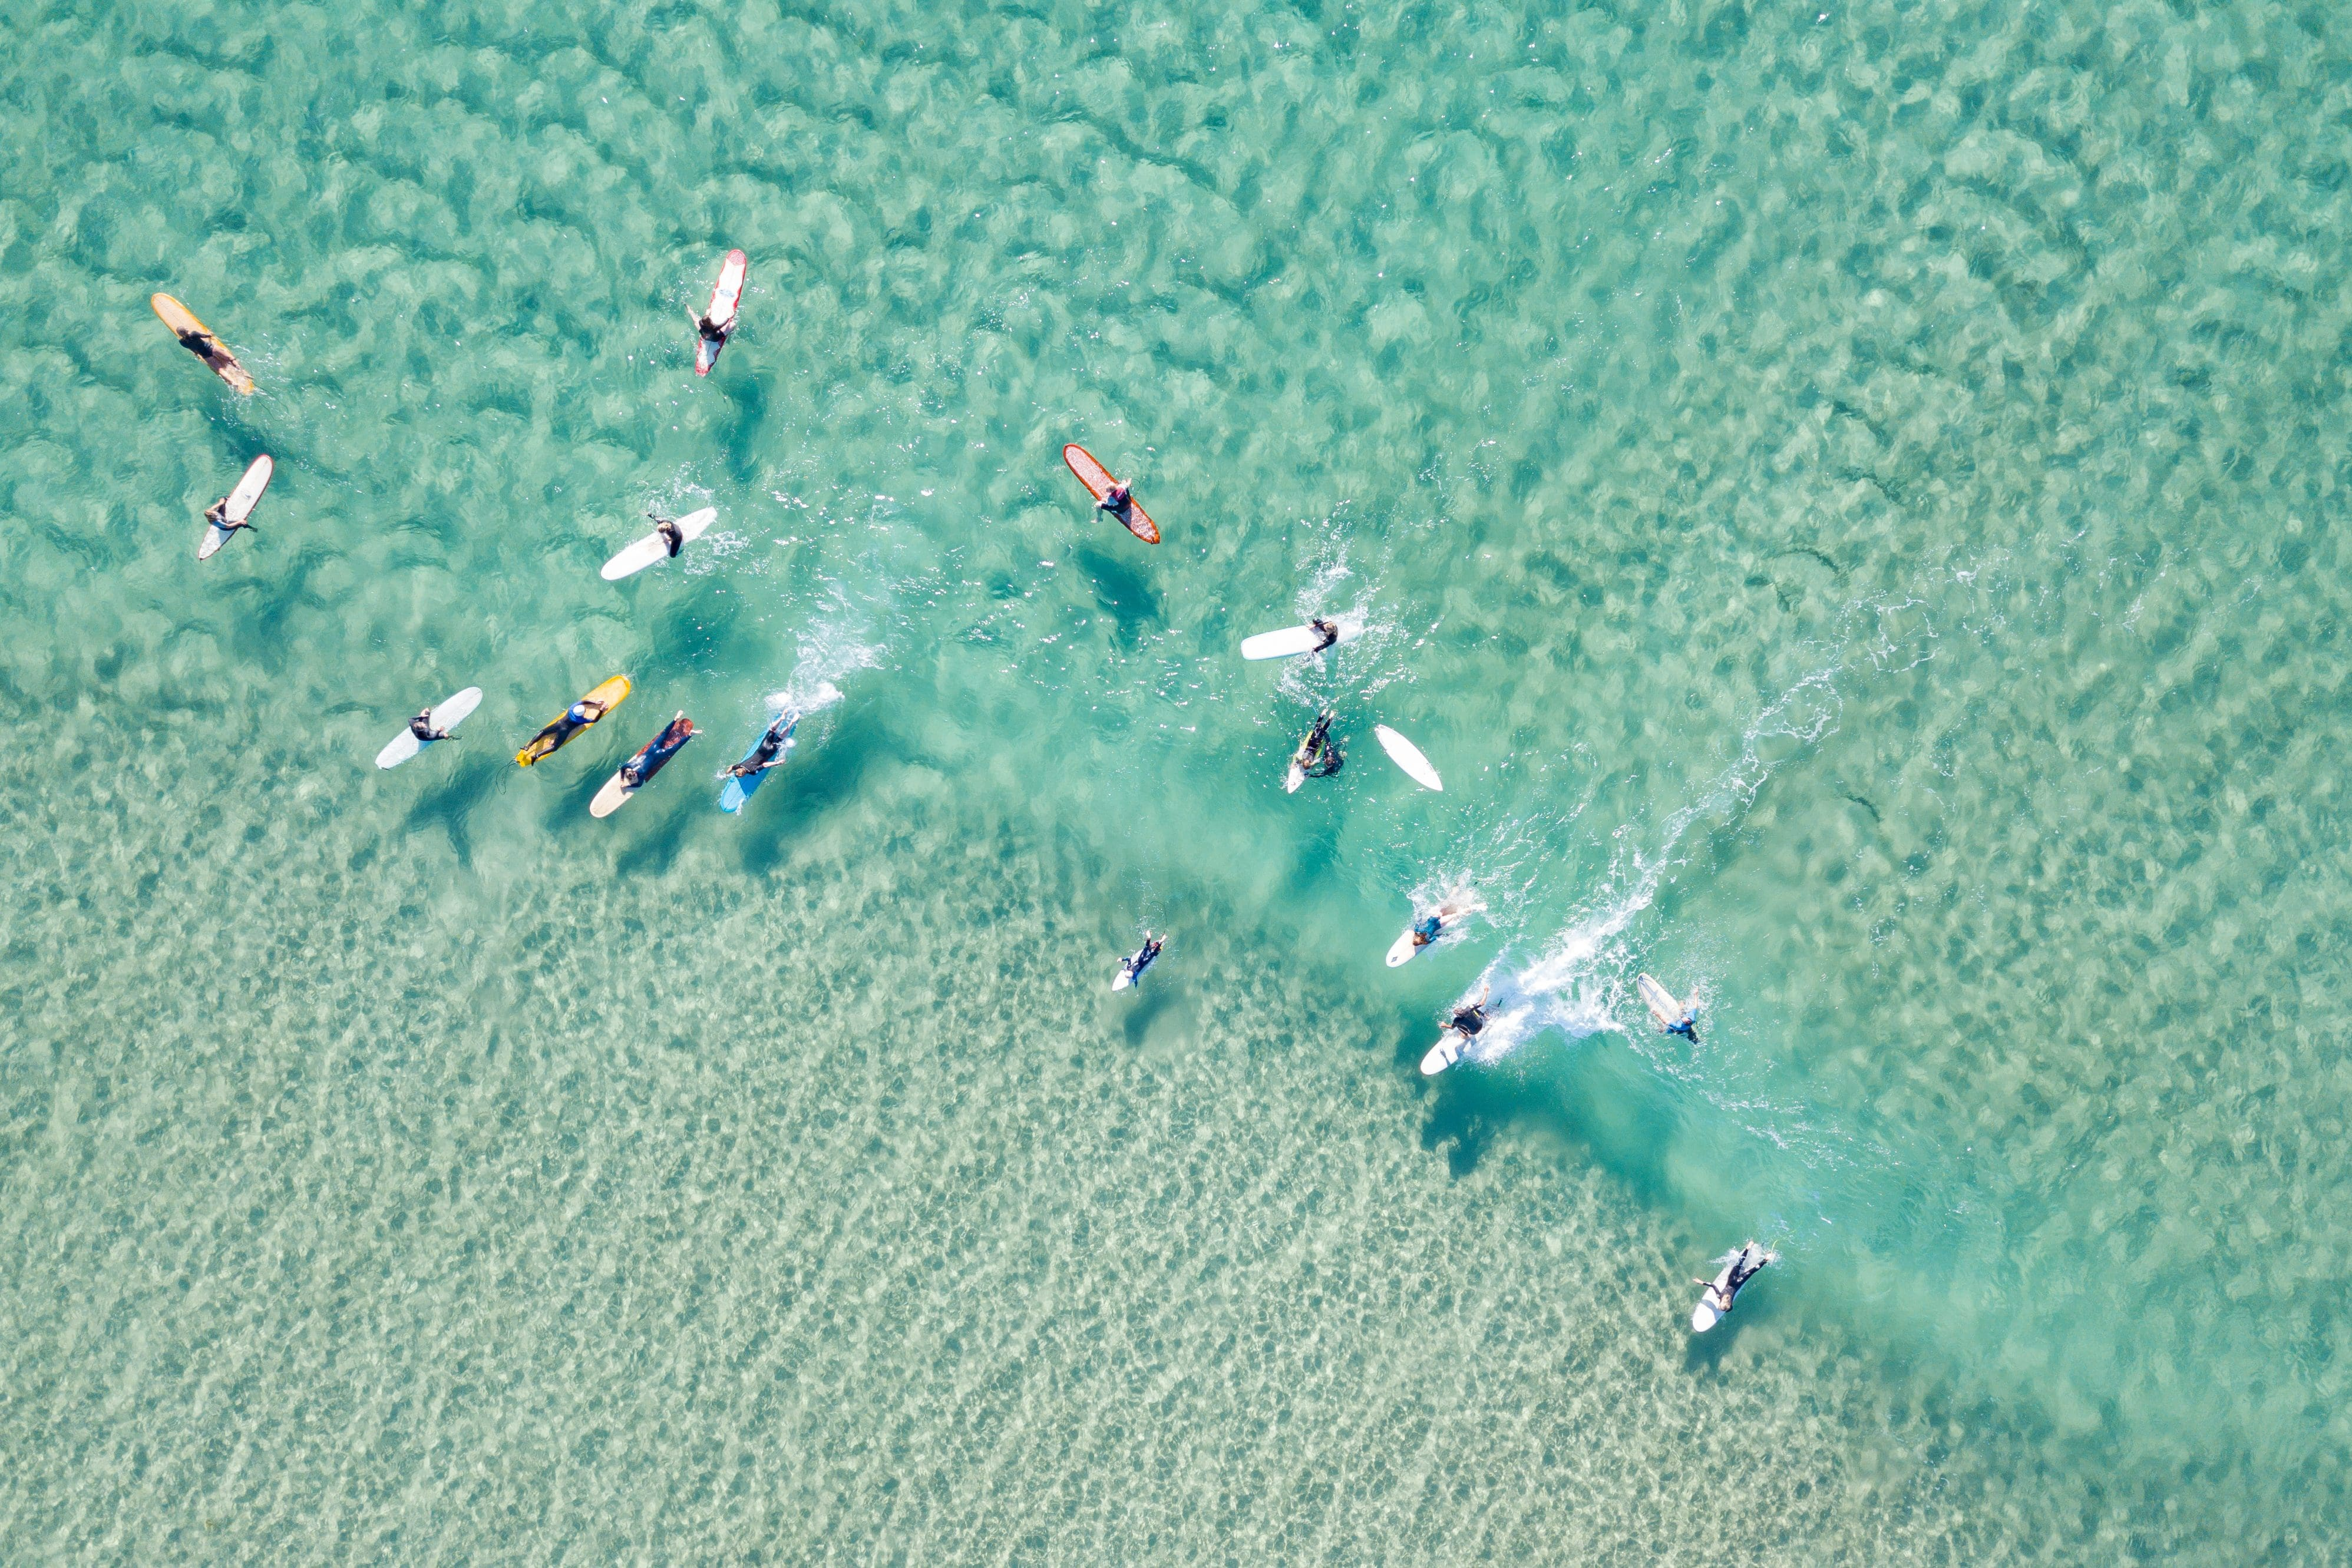 Bird's-eye view of surfers waiting for a wave on a azure blue sea